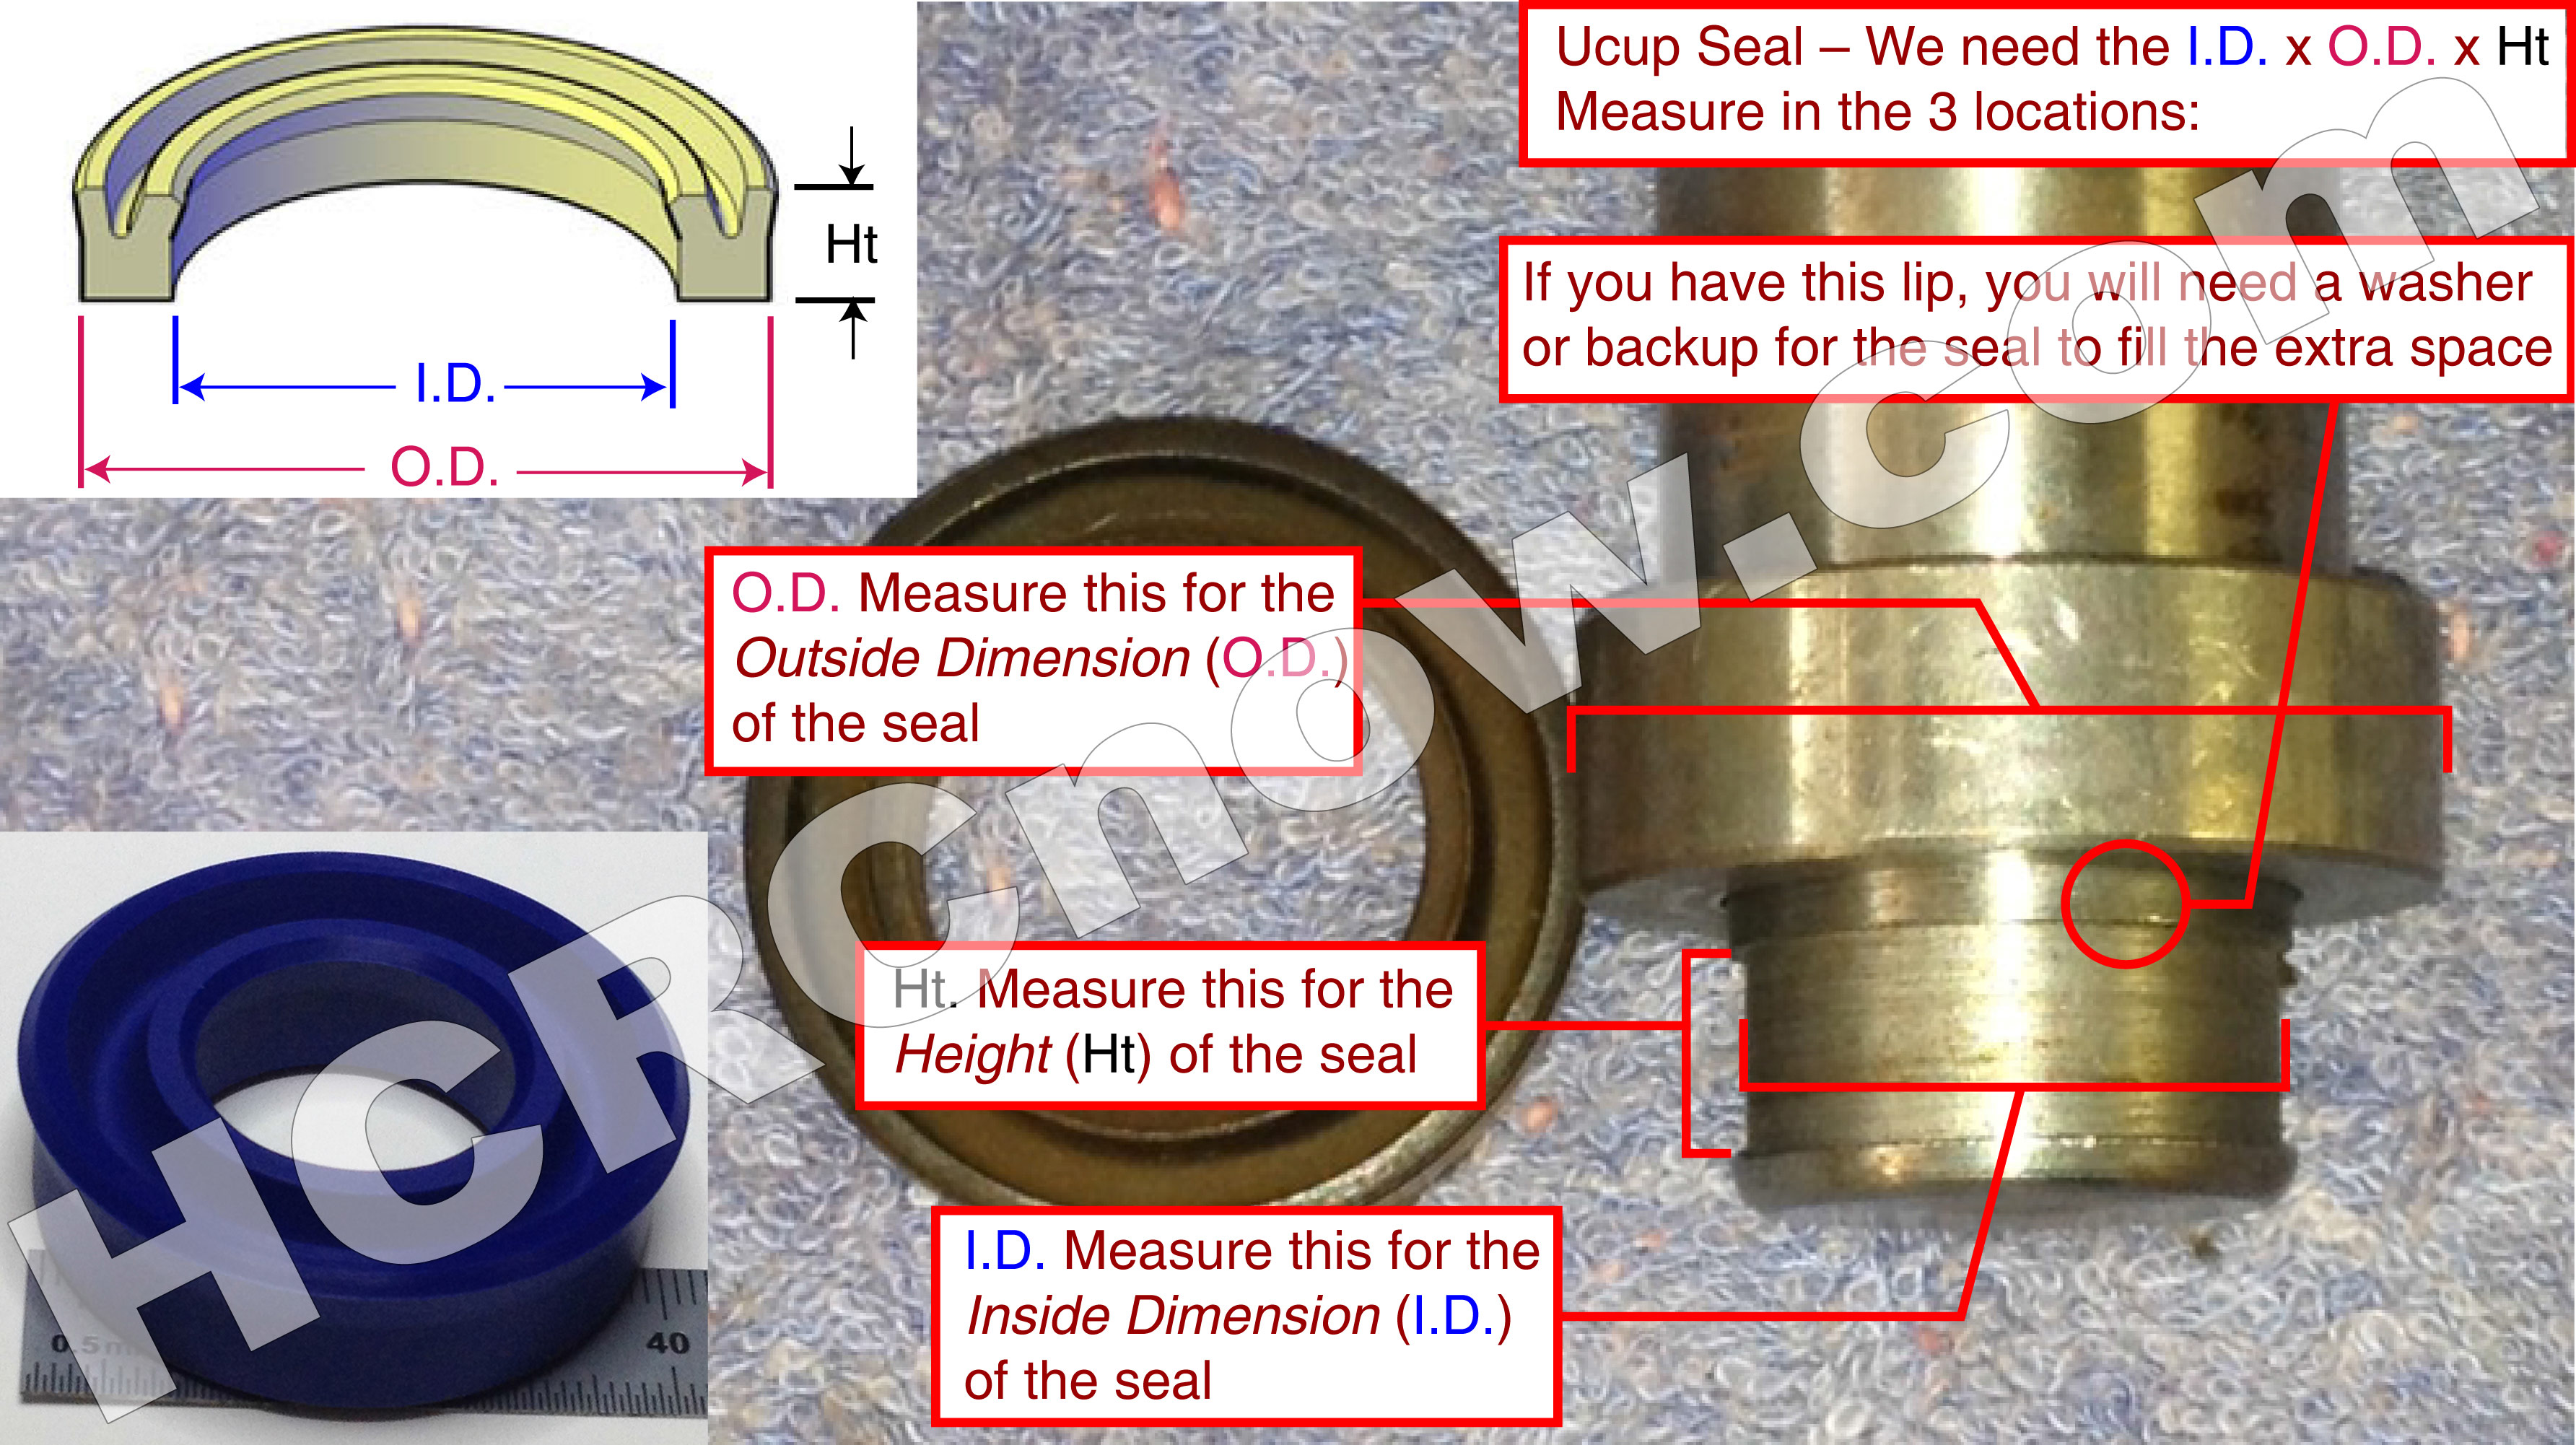 How to measure resources hcrcnow b3 how to measure a ucup seal used on a ram nvjuhfo Image collections